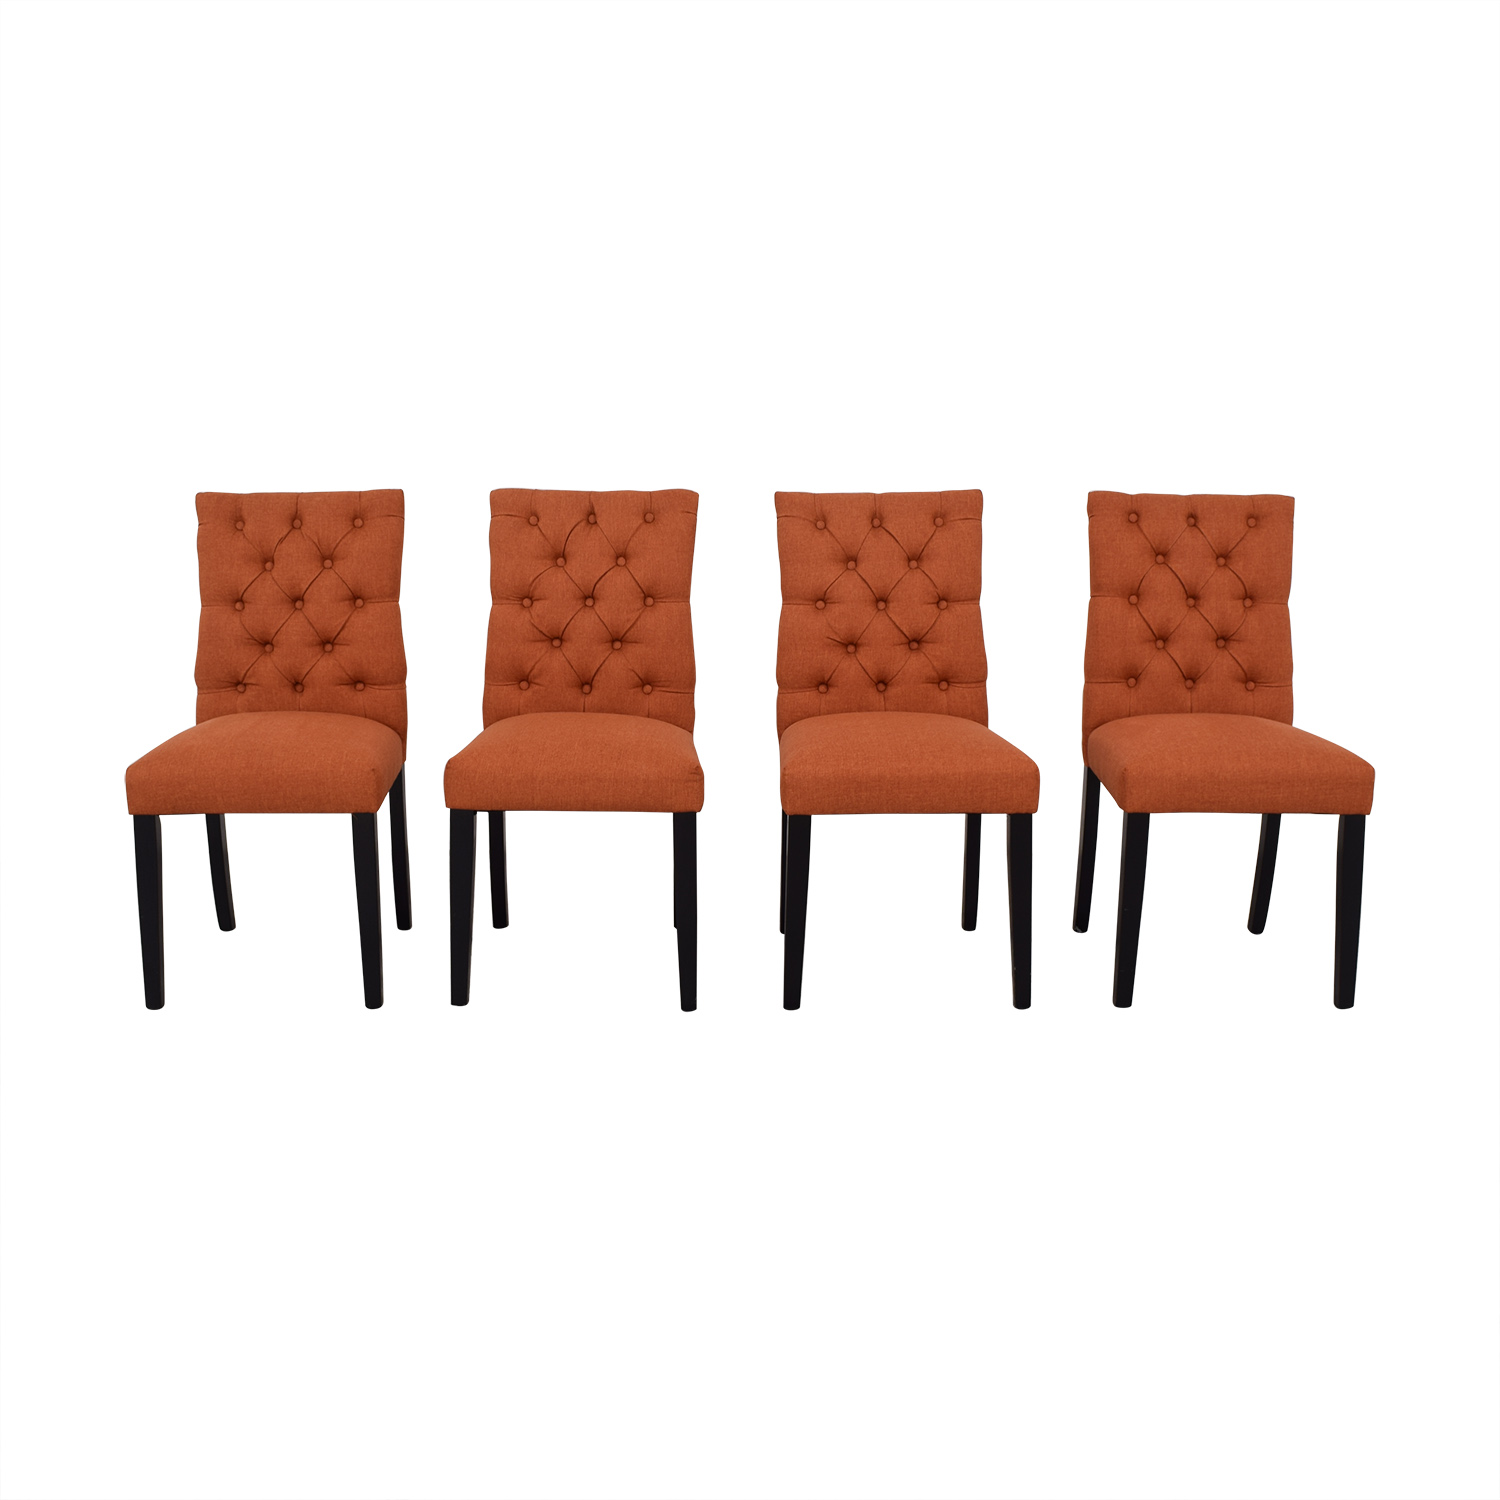 Modway Modway Confer Dining Chairs Chairs